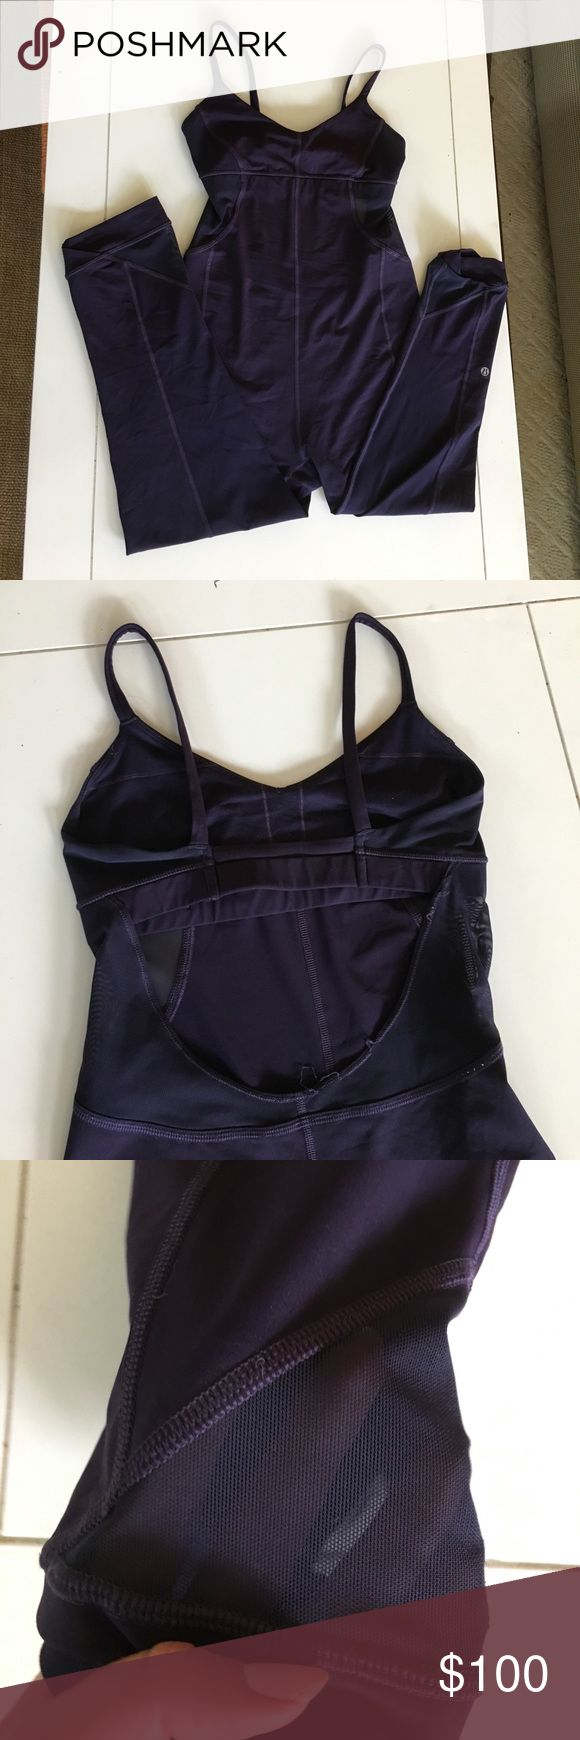 LULULEMON Plum Yoga Full Bodysuit 🍋 LULULEMON Plum Yoga Full Bodysuit - Size 8 - Has mesh detailing on back and legs - Built in Bra with no pads - Equivalent to capri length pants in terms of length. Questions are welcome 😊 CHEAPER ON Ⓜ️ lululemon athletica Other